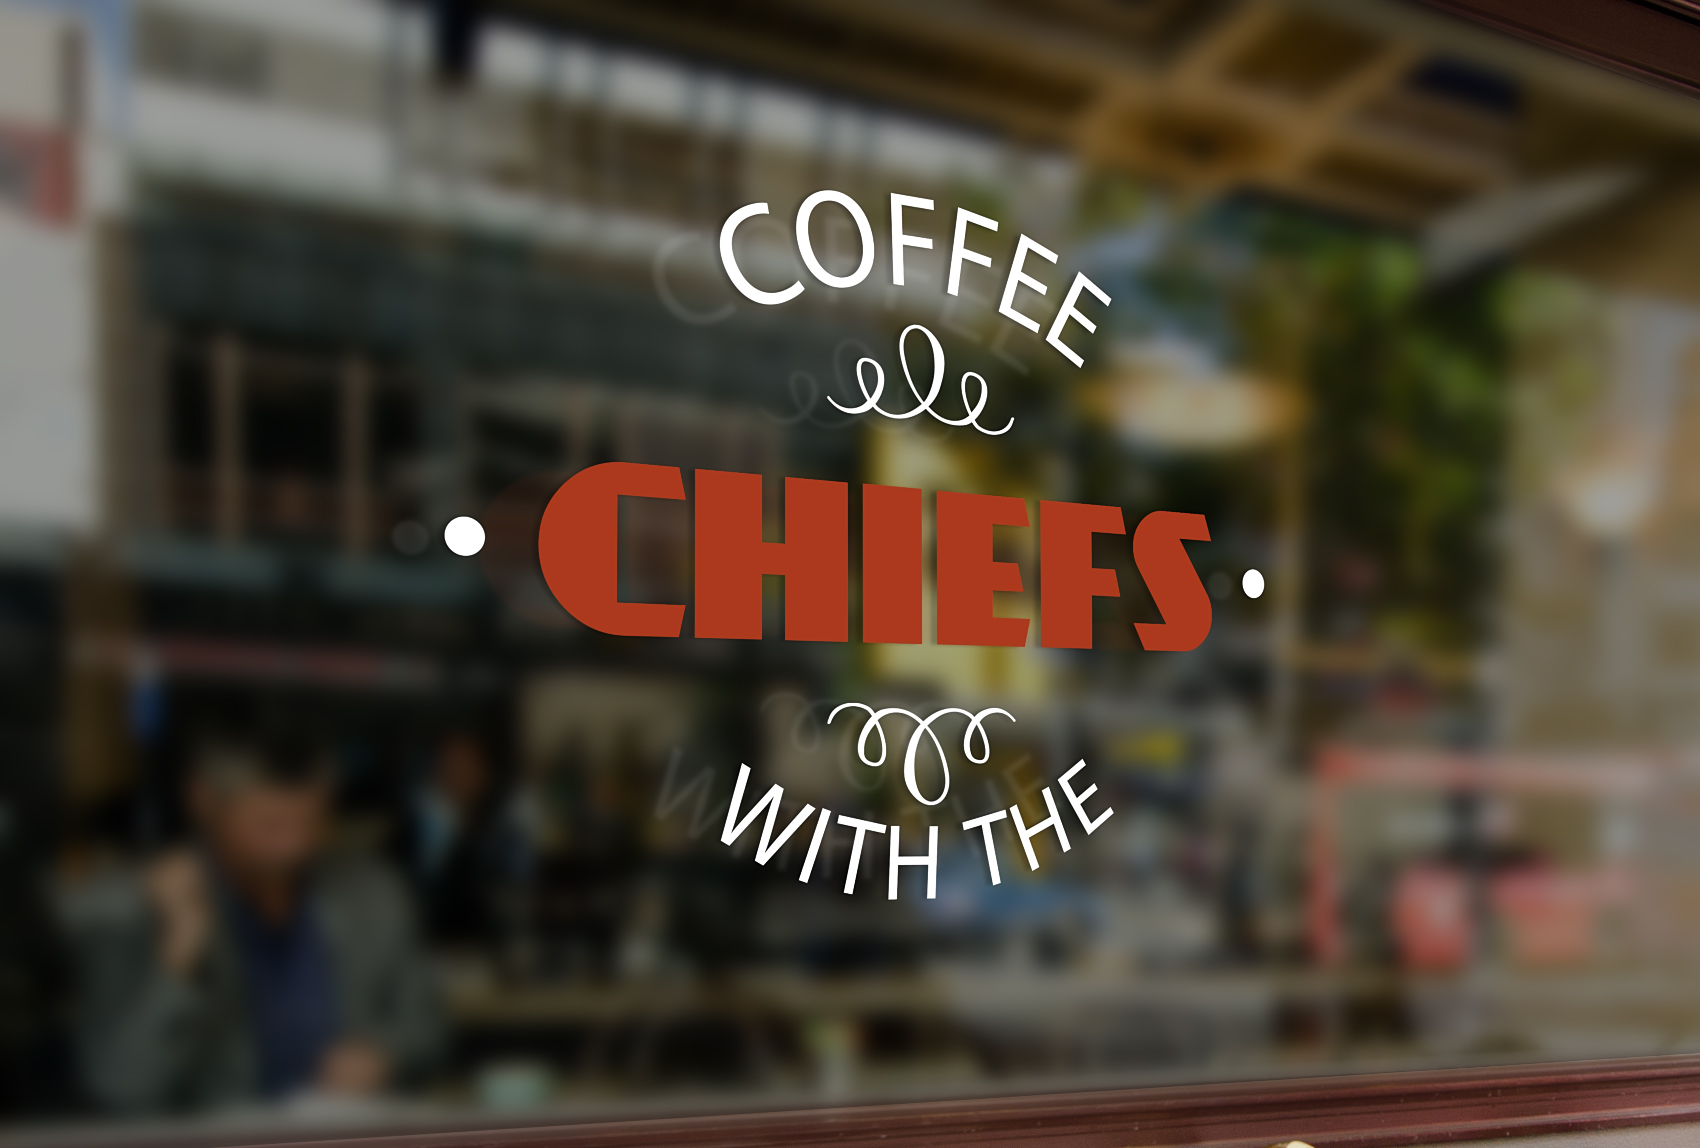 Coffee-with-the-chiefs